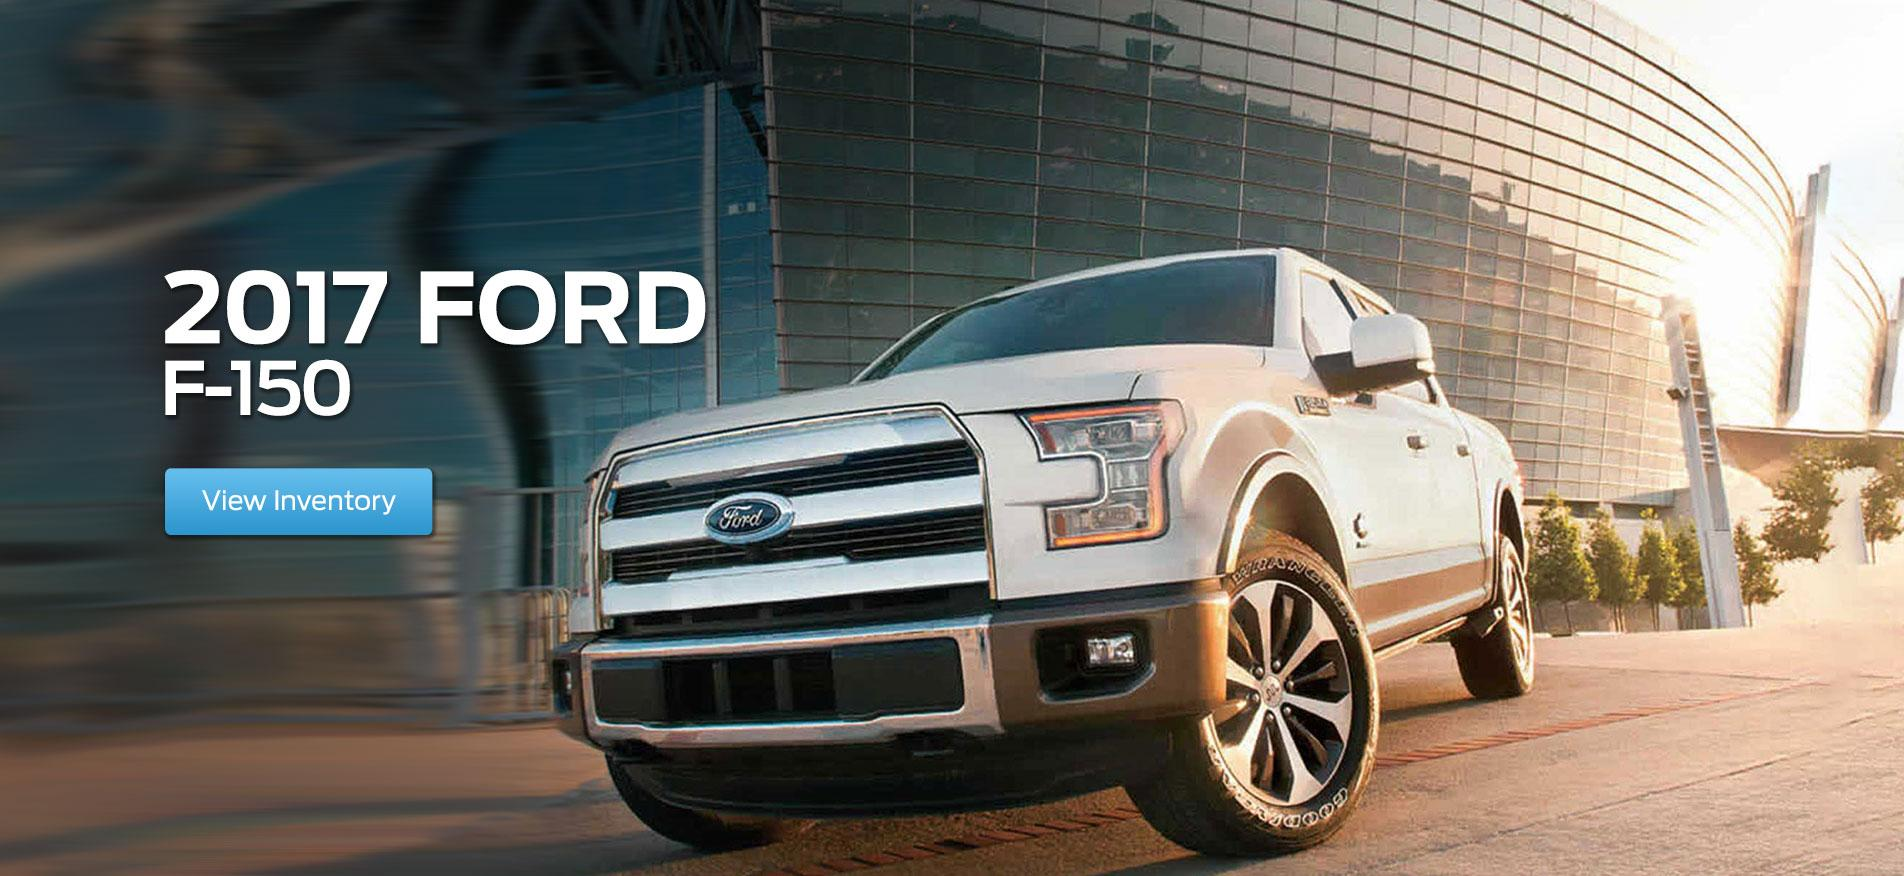 F-150 Dunlop Ford